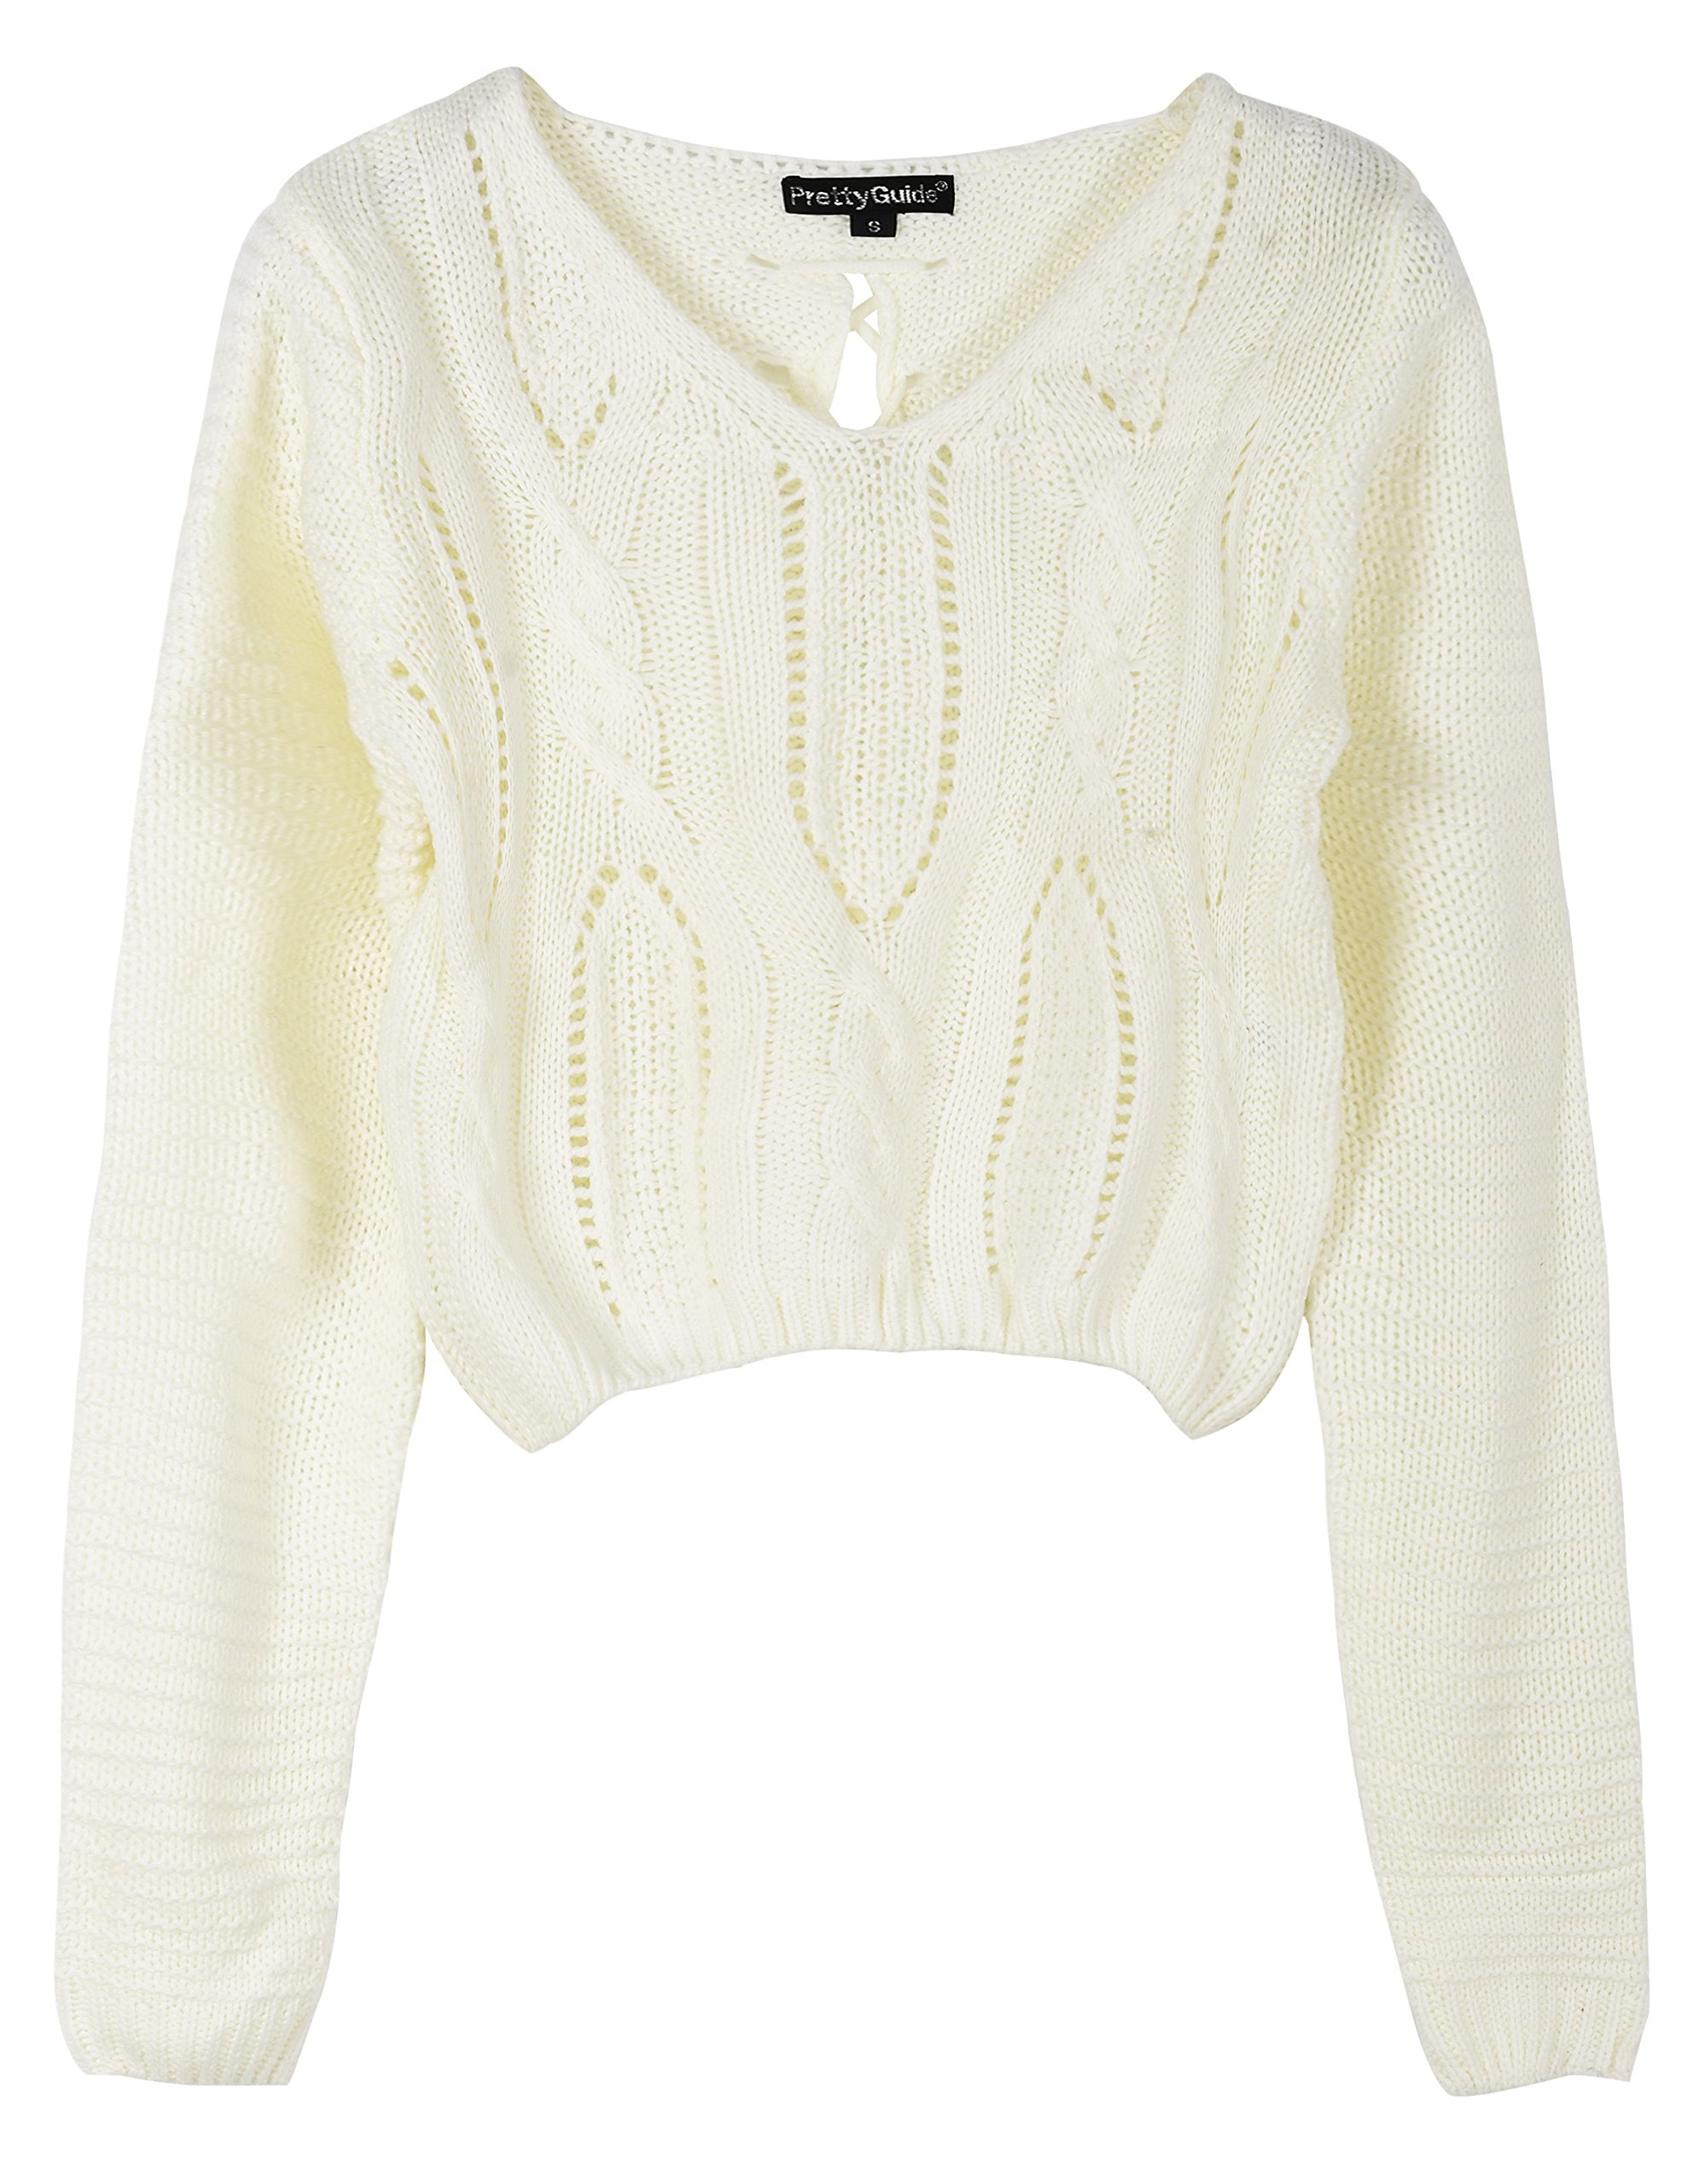 PrettyGuide Women's Long Sleeve Eyelet Cable Lace Up Crop Top White M